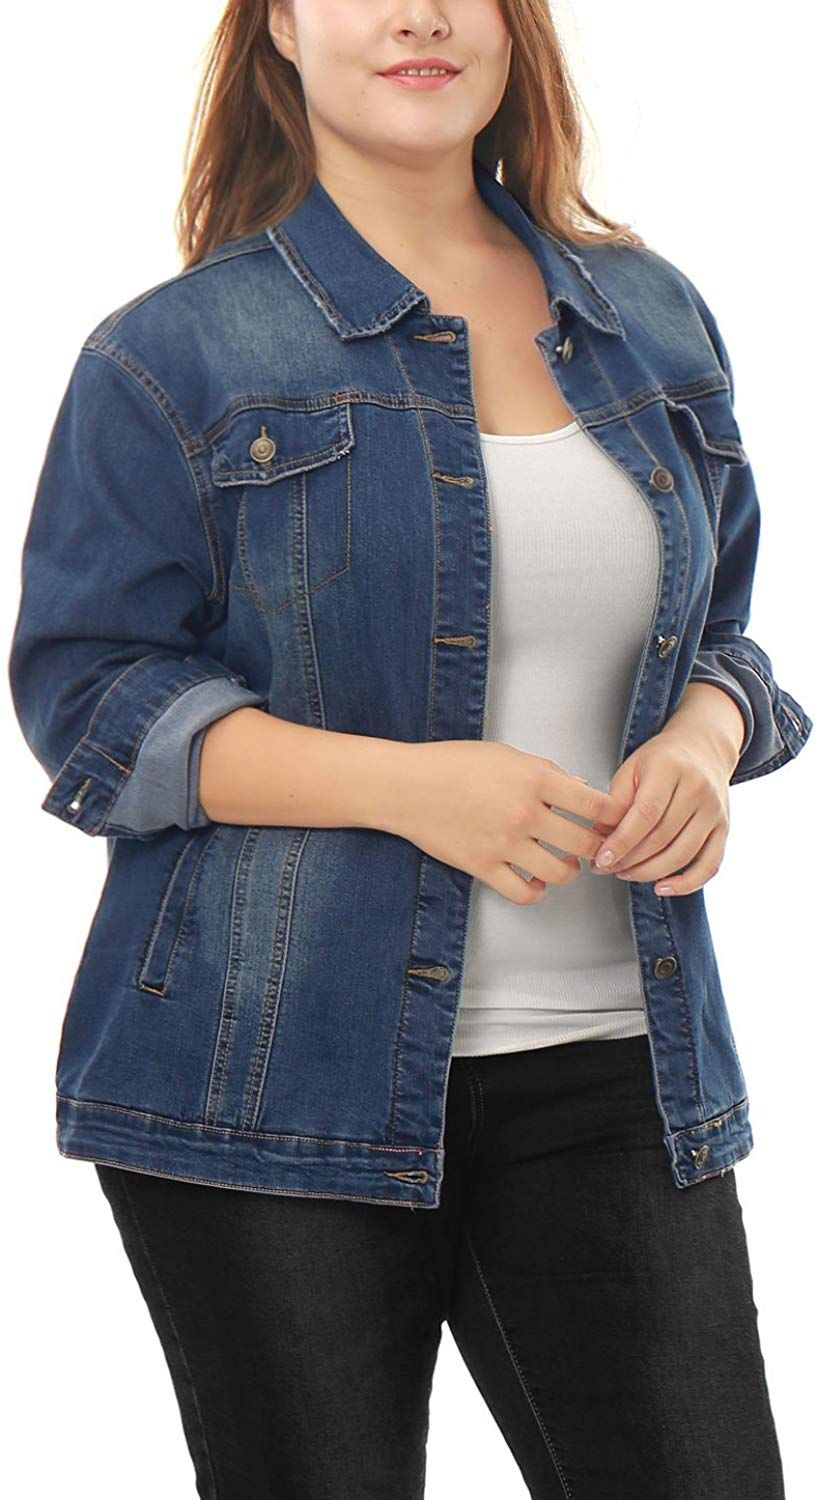 Uxcell Women S Plus Size Button Down Washed Denim Jacket With Chest Flap Pocket Blue 1x At Amazon Women S Coats Shop Denim Jacket Jackets Denim Wash [ 1500 x 817 Pixel ]